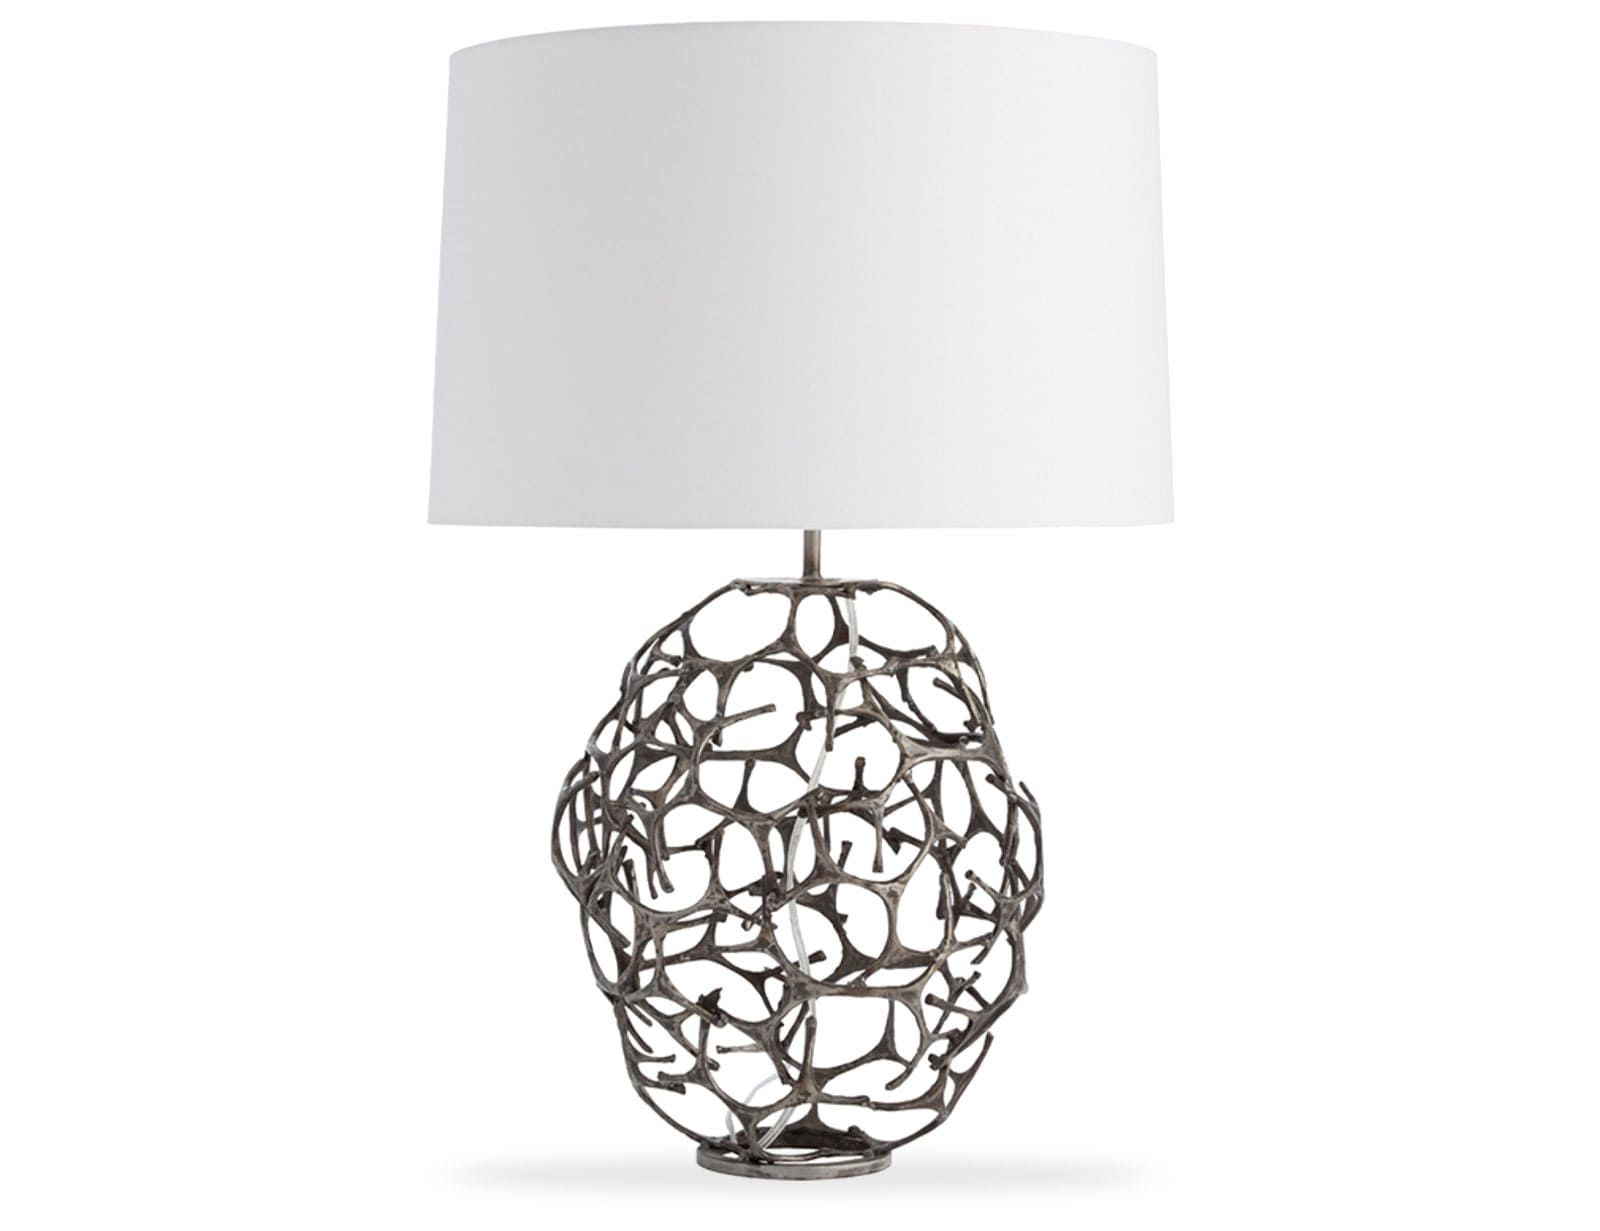 Arteriors Tillman Metal Table Lamp Clearance Sale